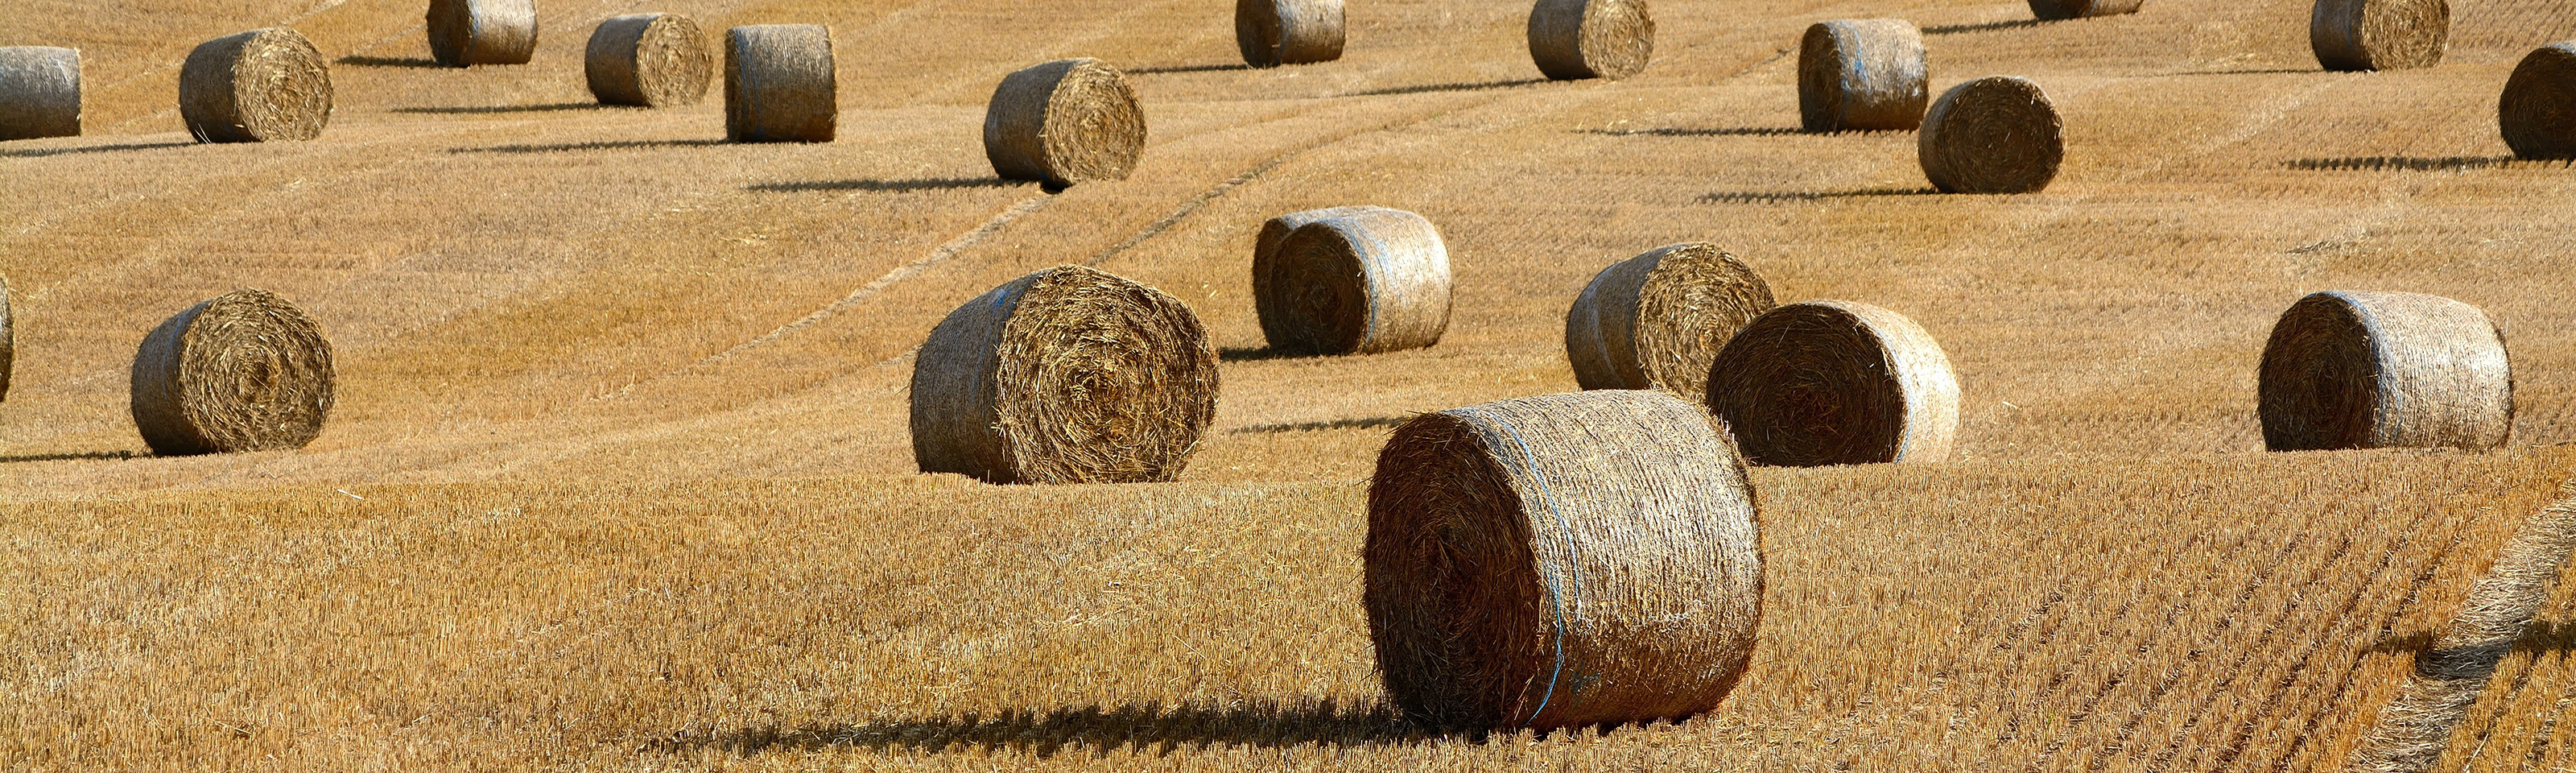 A photo of a fallow field in late fall, with many hay bales strewn about.